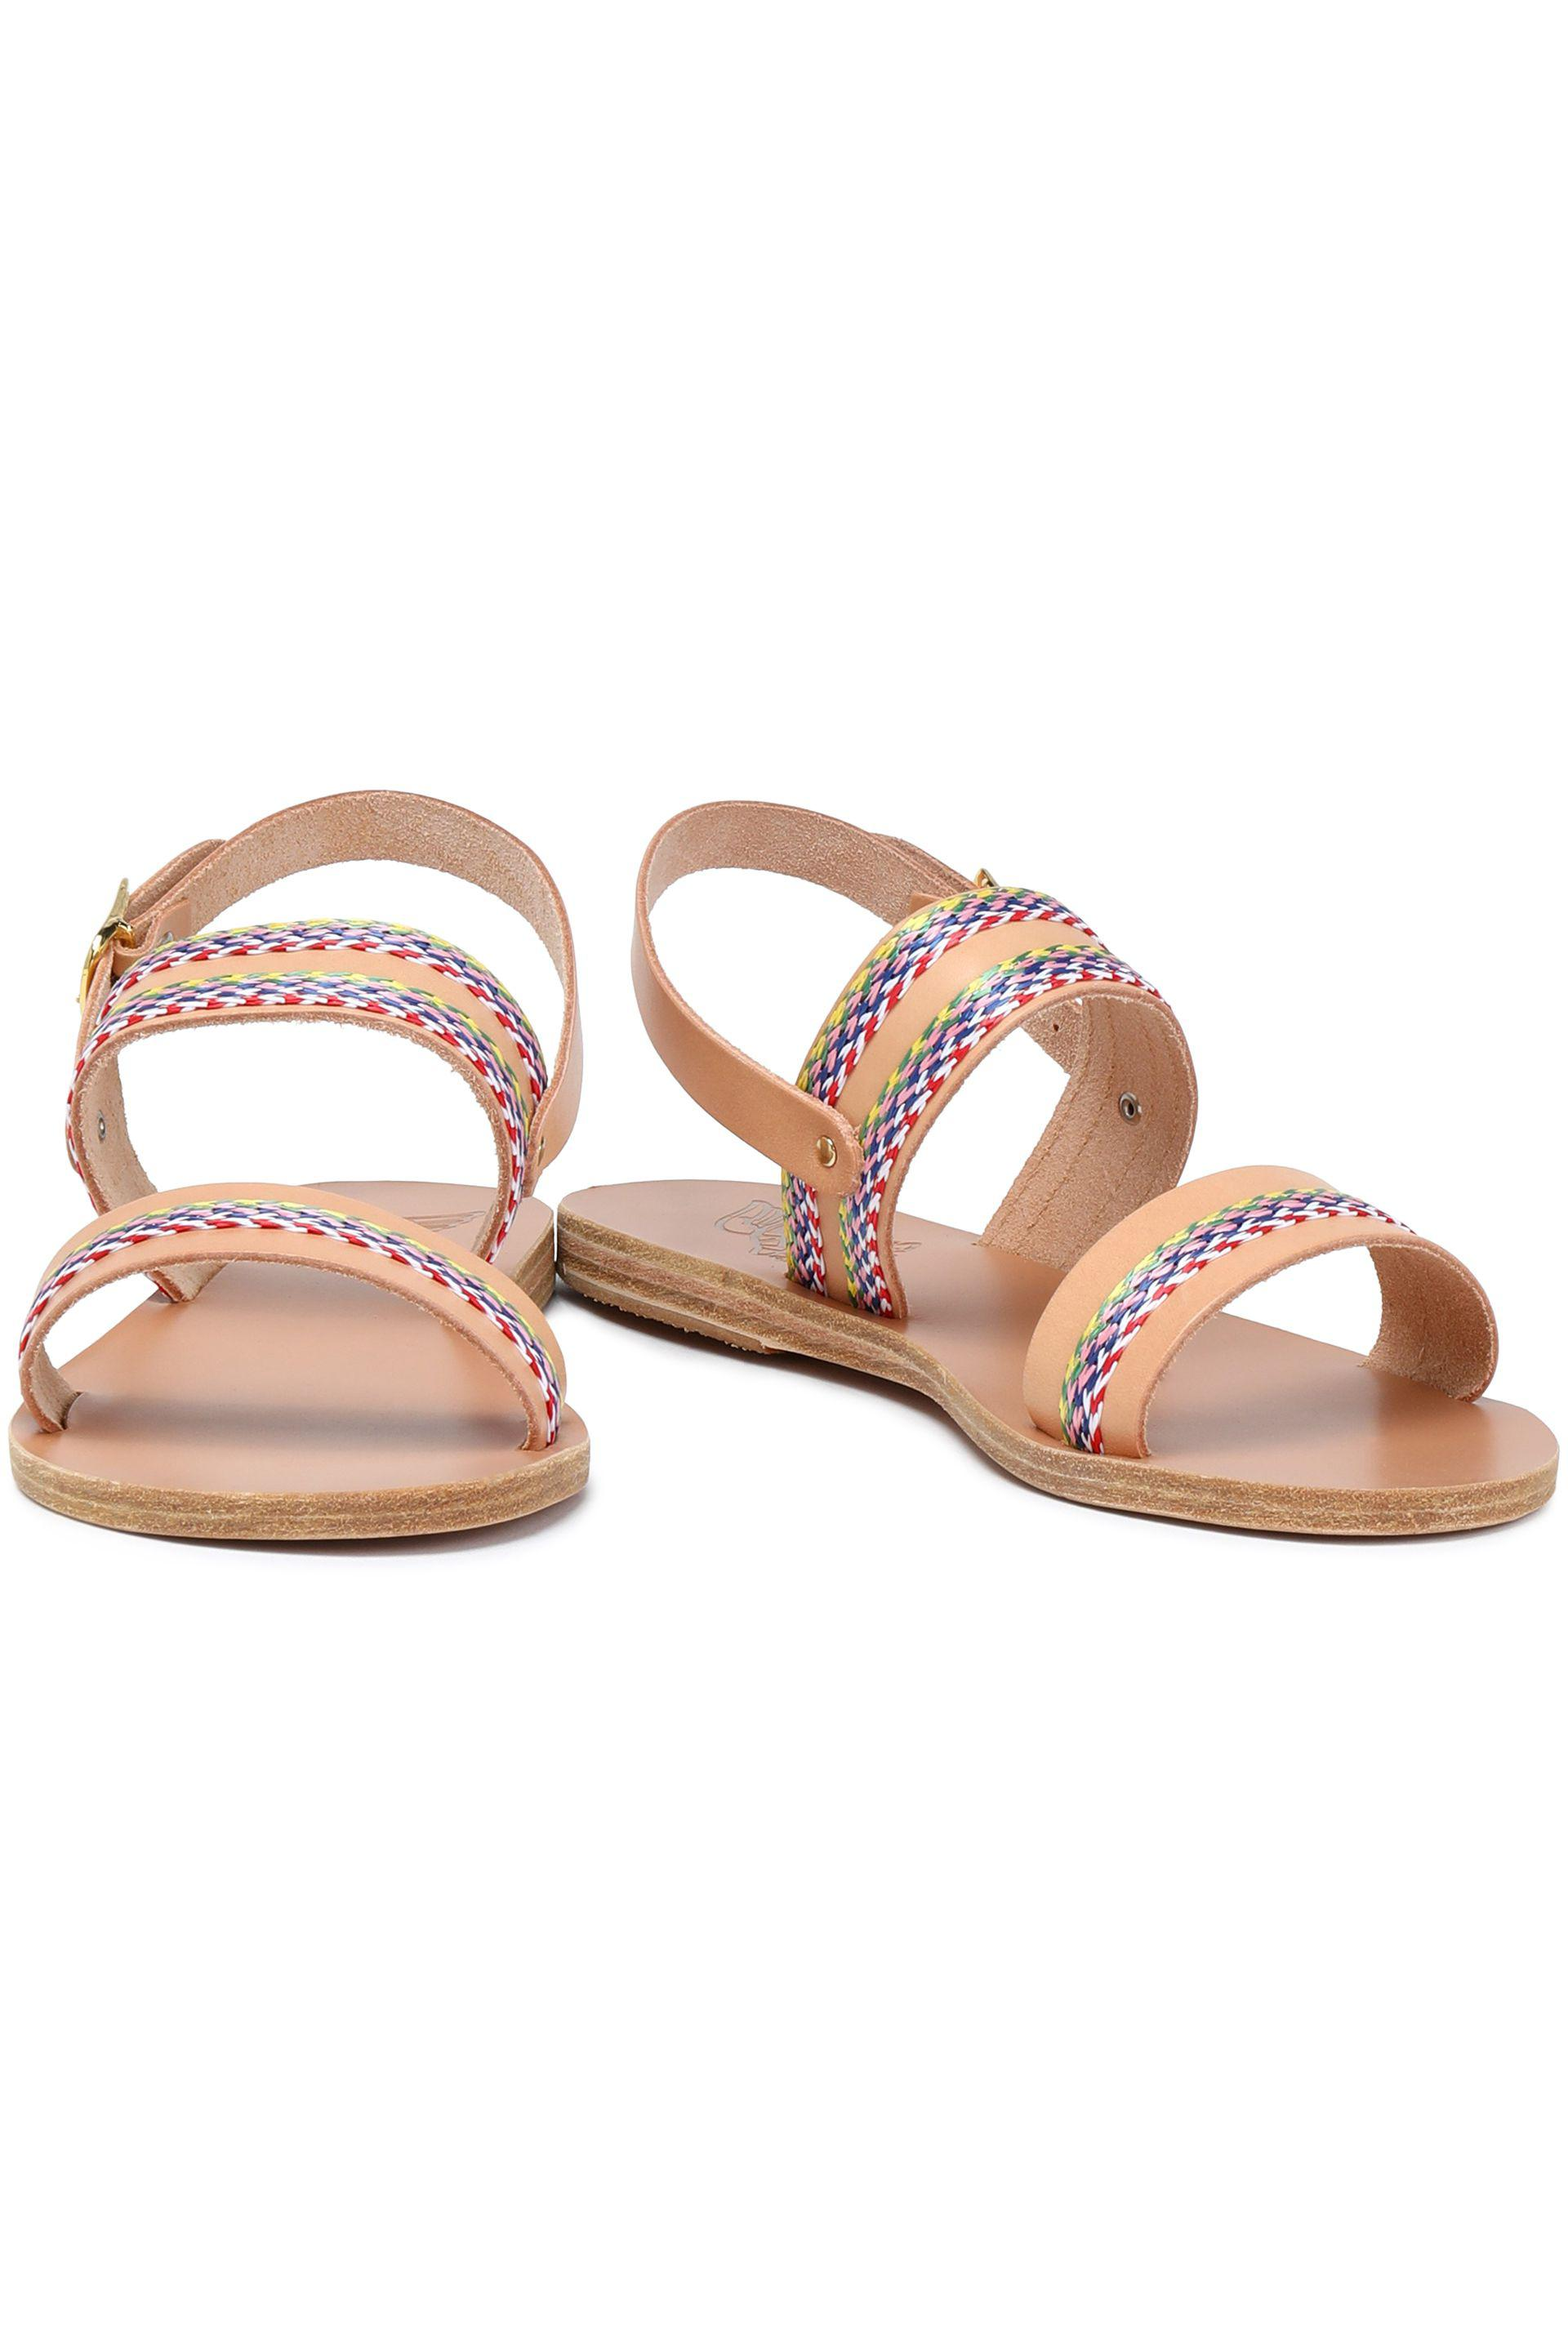 d7a5cbbd9bfb1b Gallery. Previously sold at  THE OUTNET.COM · Women s Tie Up Sandals ...